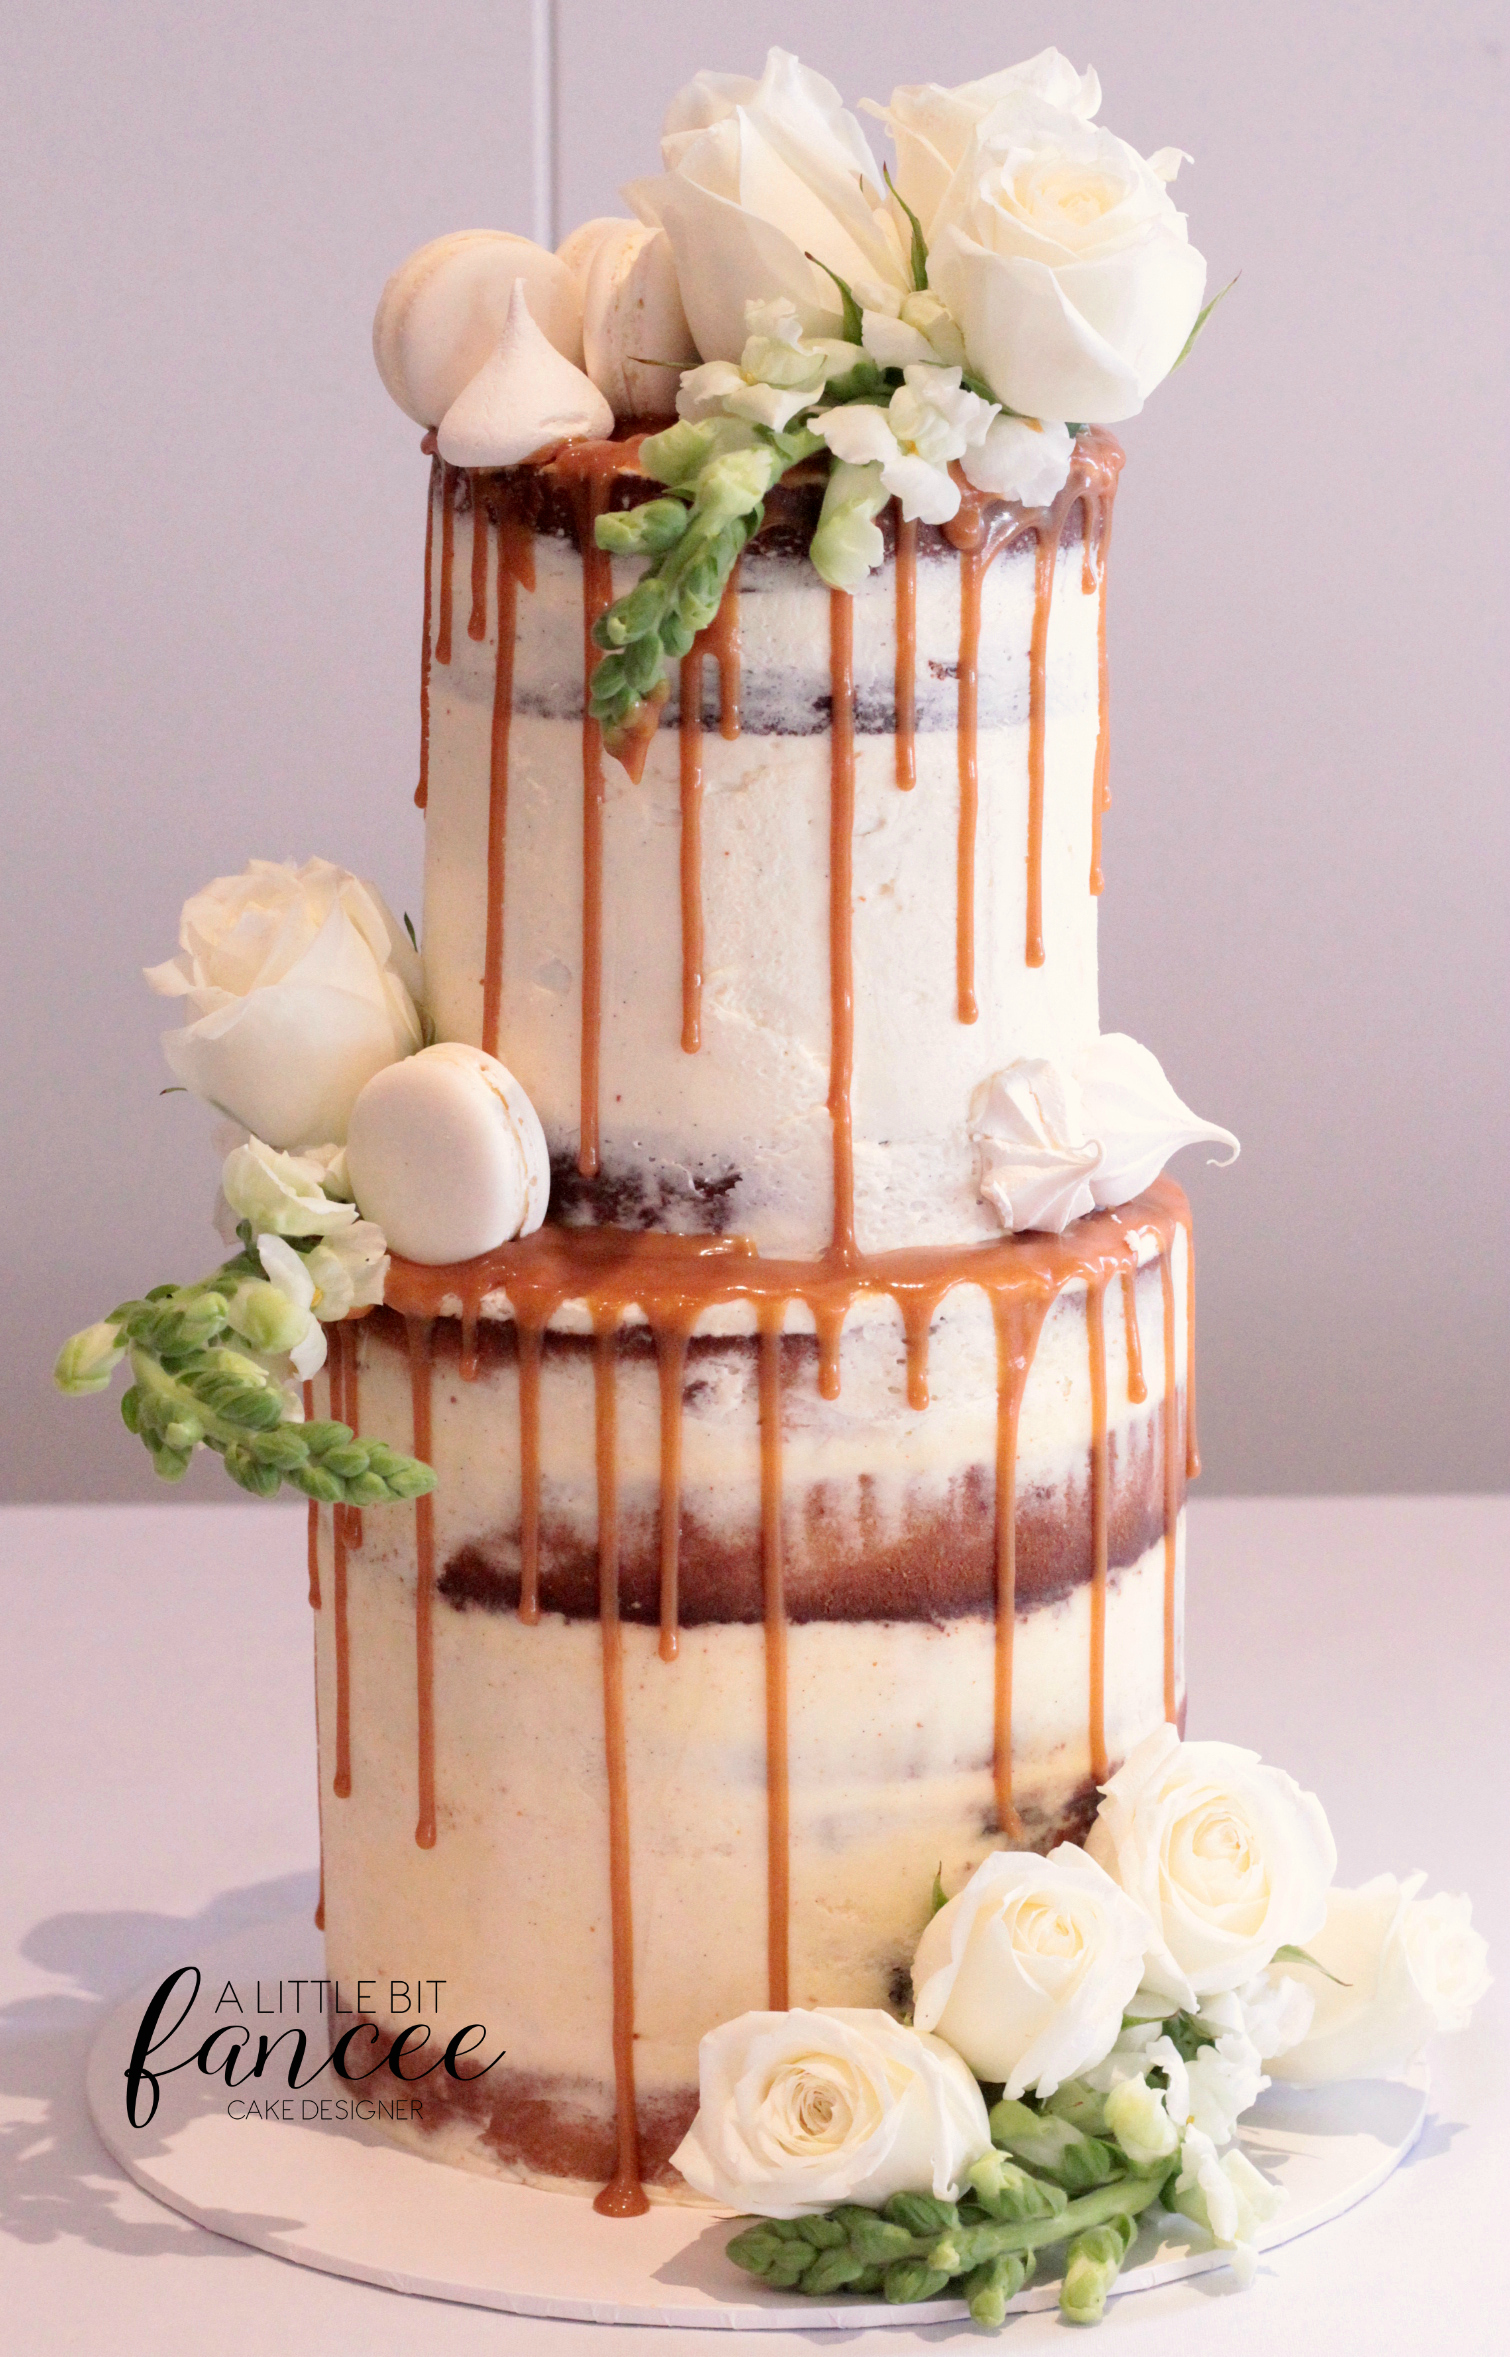 Naked cake, macarons and meringues